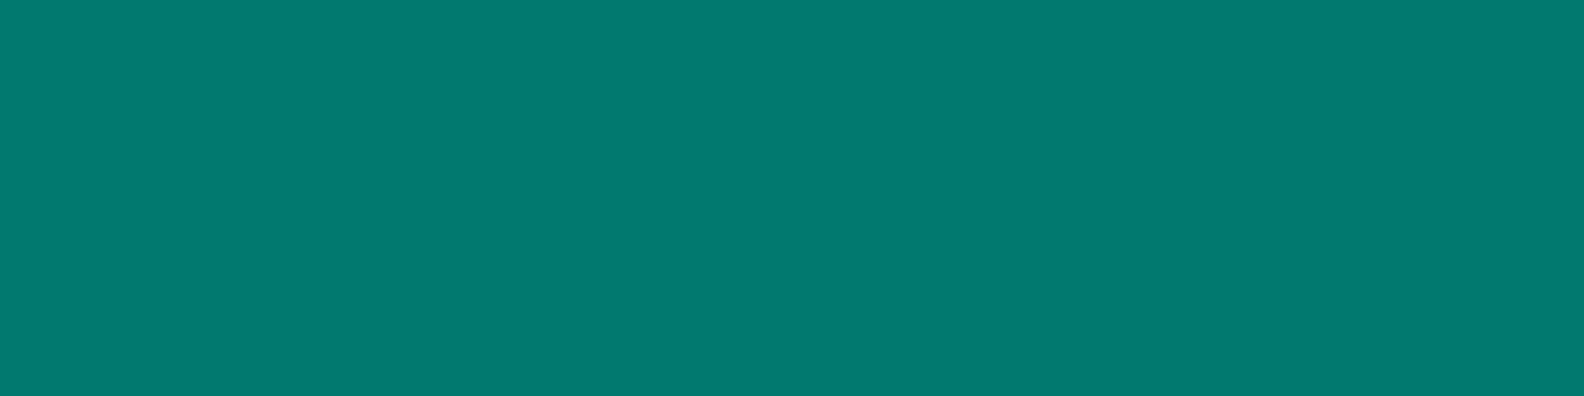 1584x396 Pine Green Solid Color Background